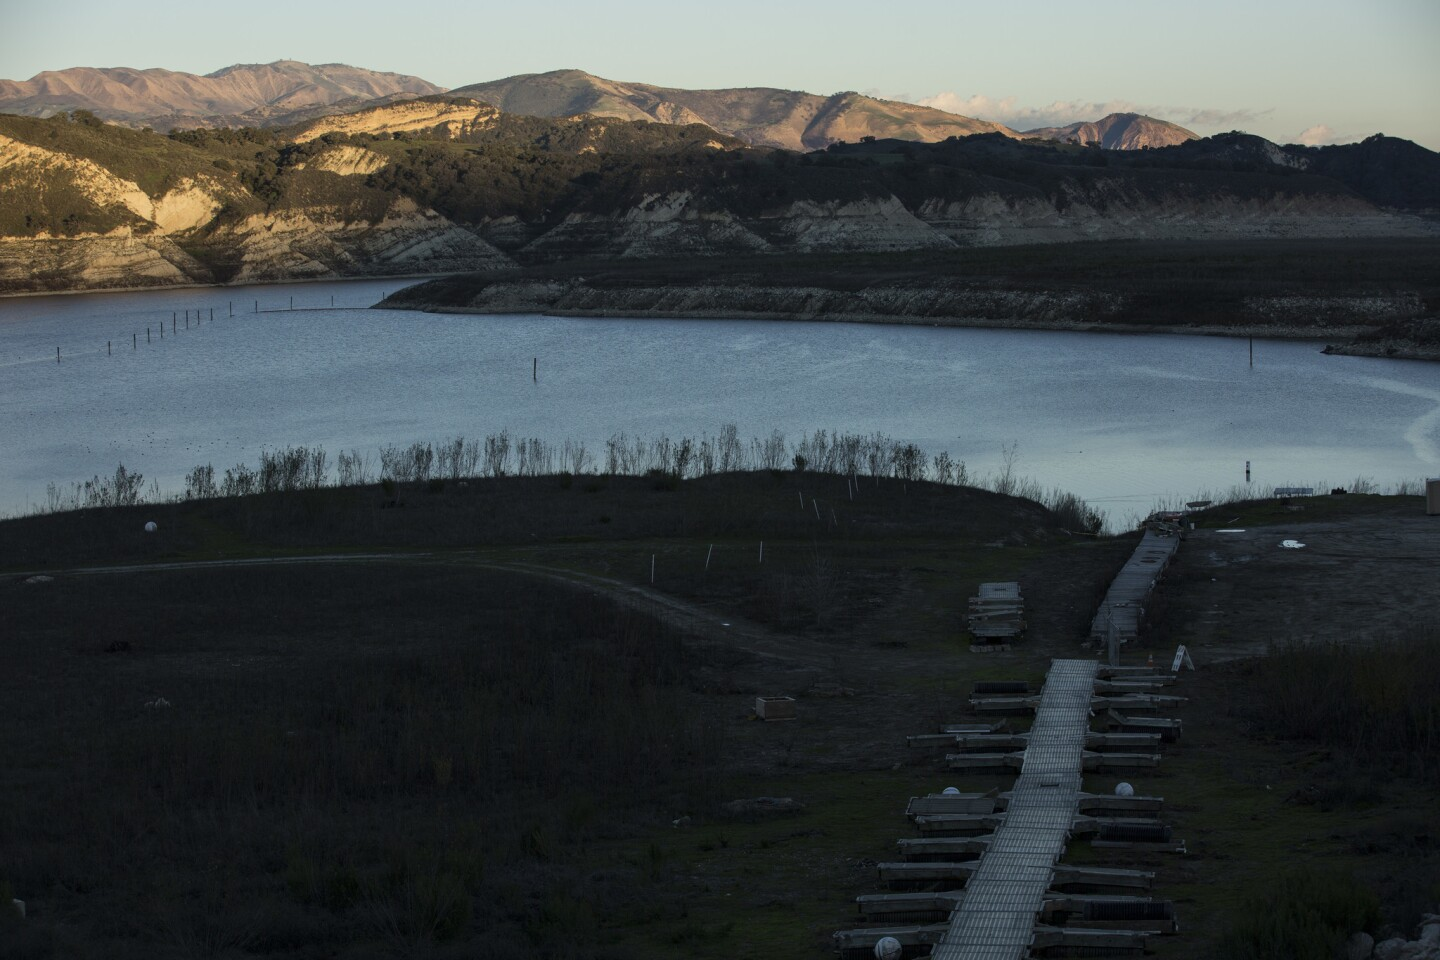 Lake Cachuma is currently at 13% of its historical average and 9% of its capacity, the lowest by far of any reservoir in California.